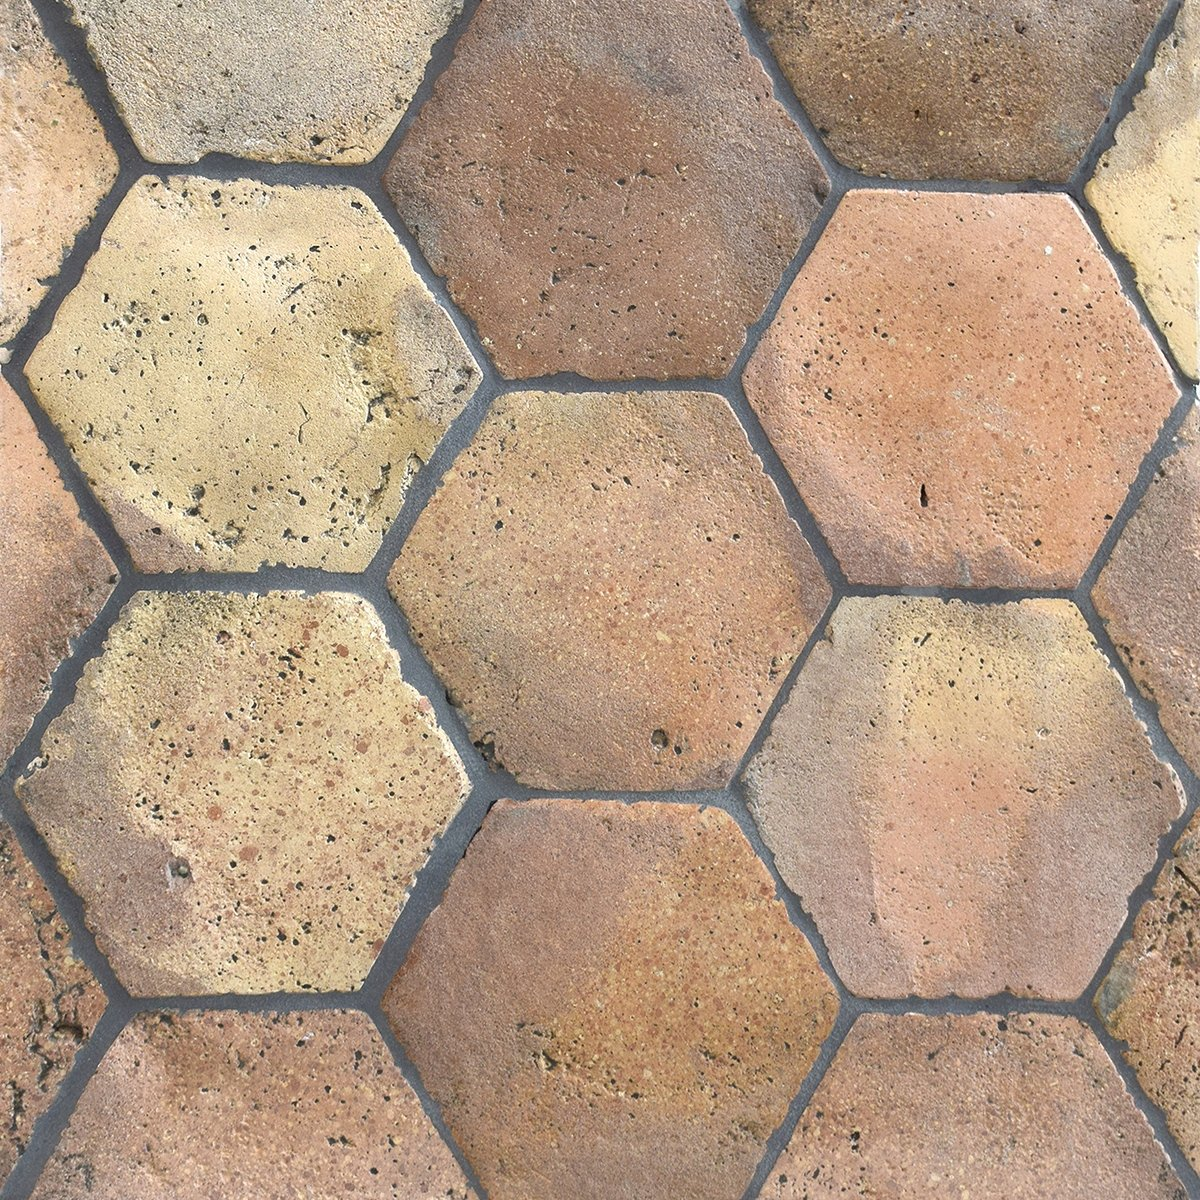 Reclaimed Natural Hexagon Terracotta Tiles 6x6